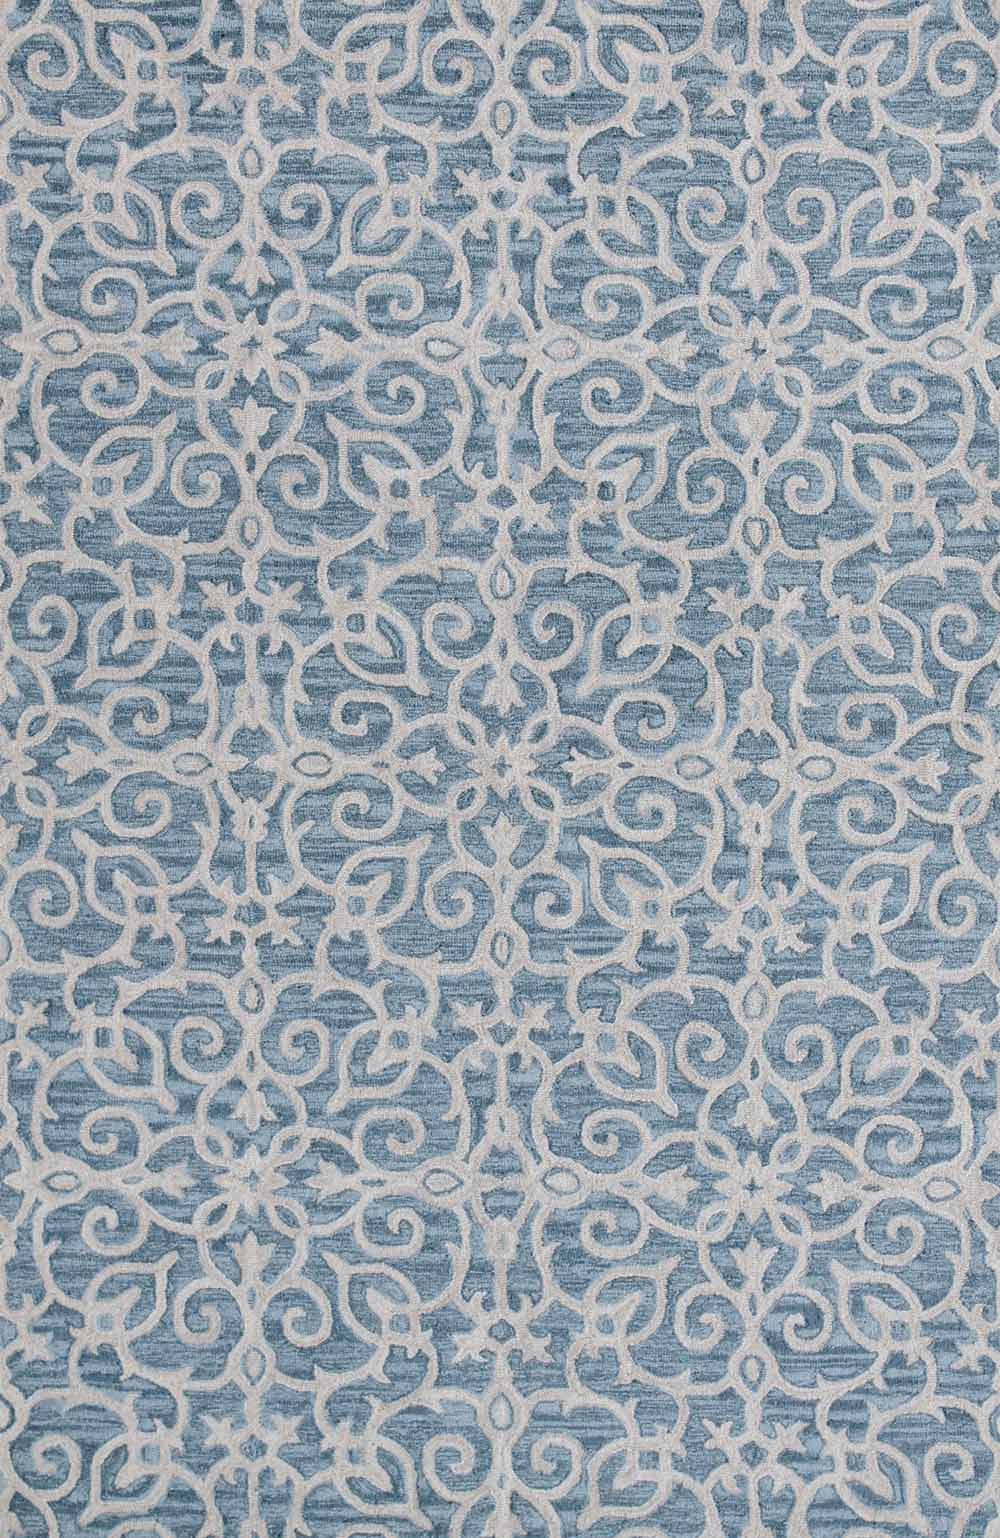 Dynamic Area Rugs Galleria 7861-590 Blue Geometric Design